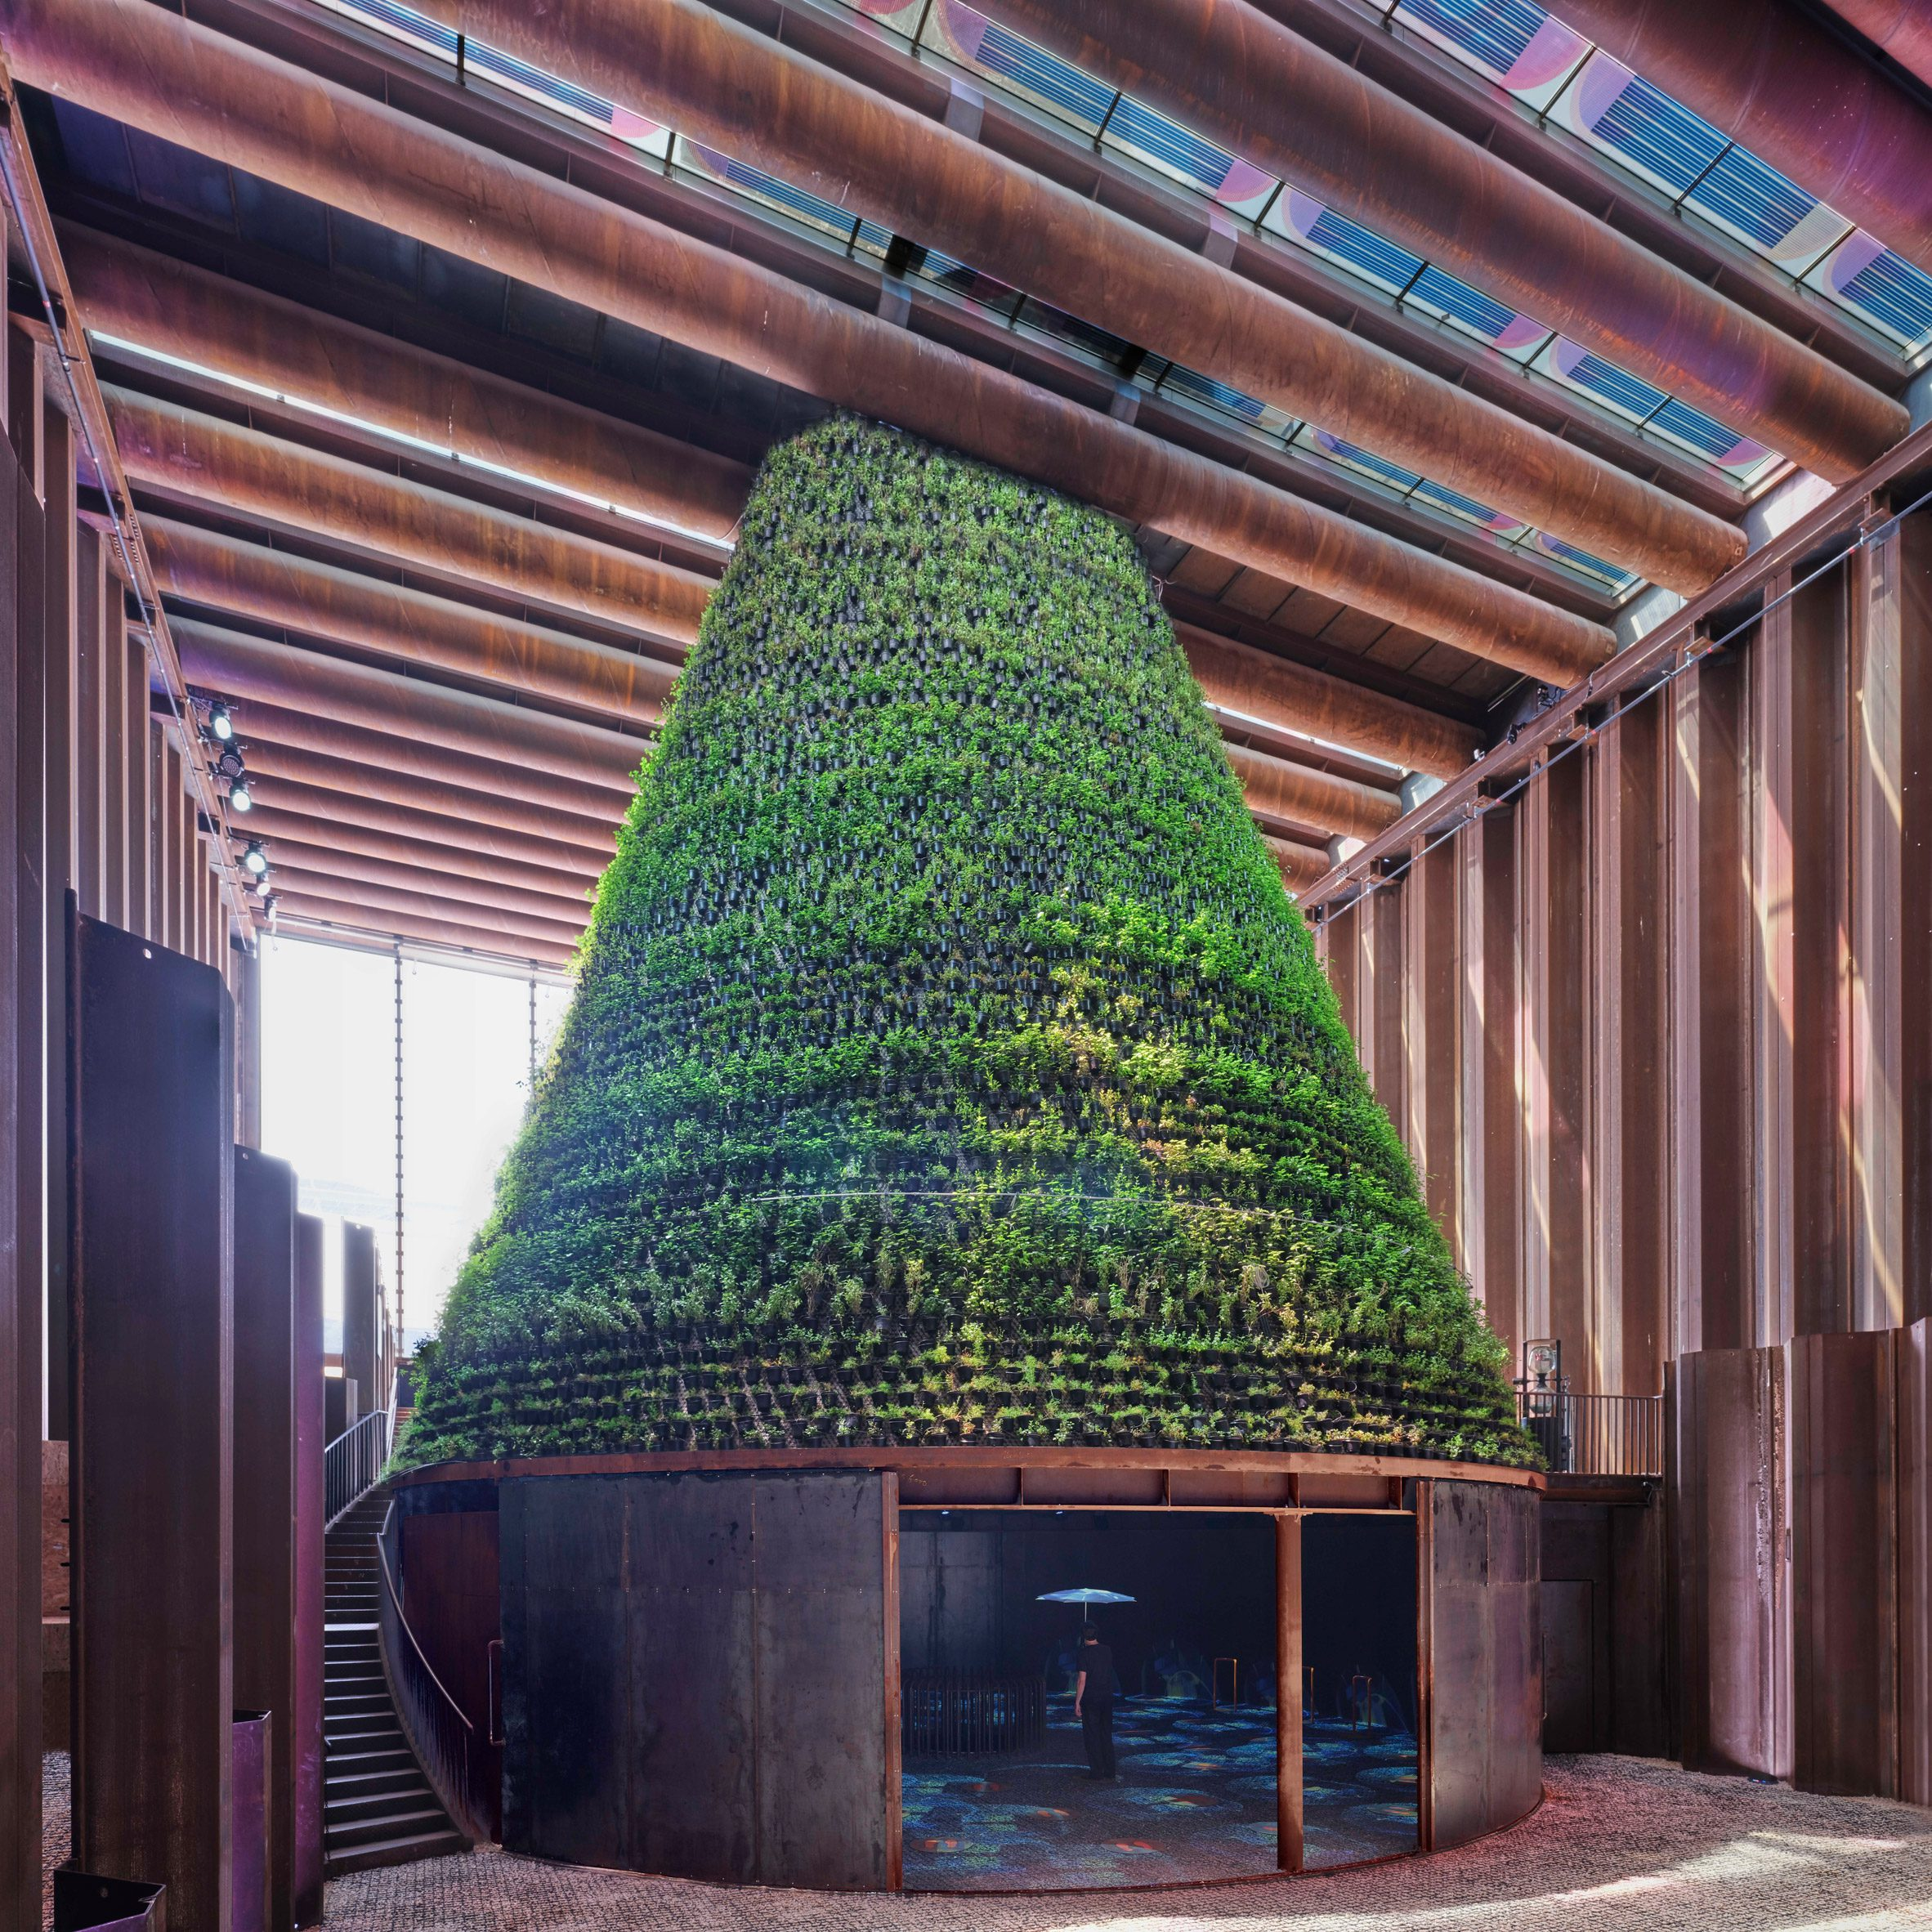 Plant-covered cone stands in the middle of the Dutch Biotope pavilion at Expo 2020 Dubai